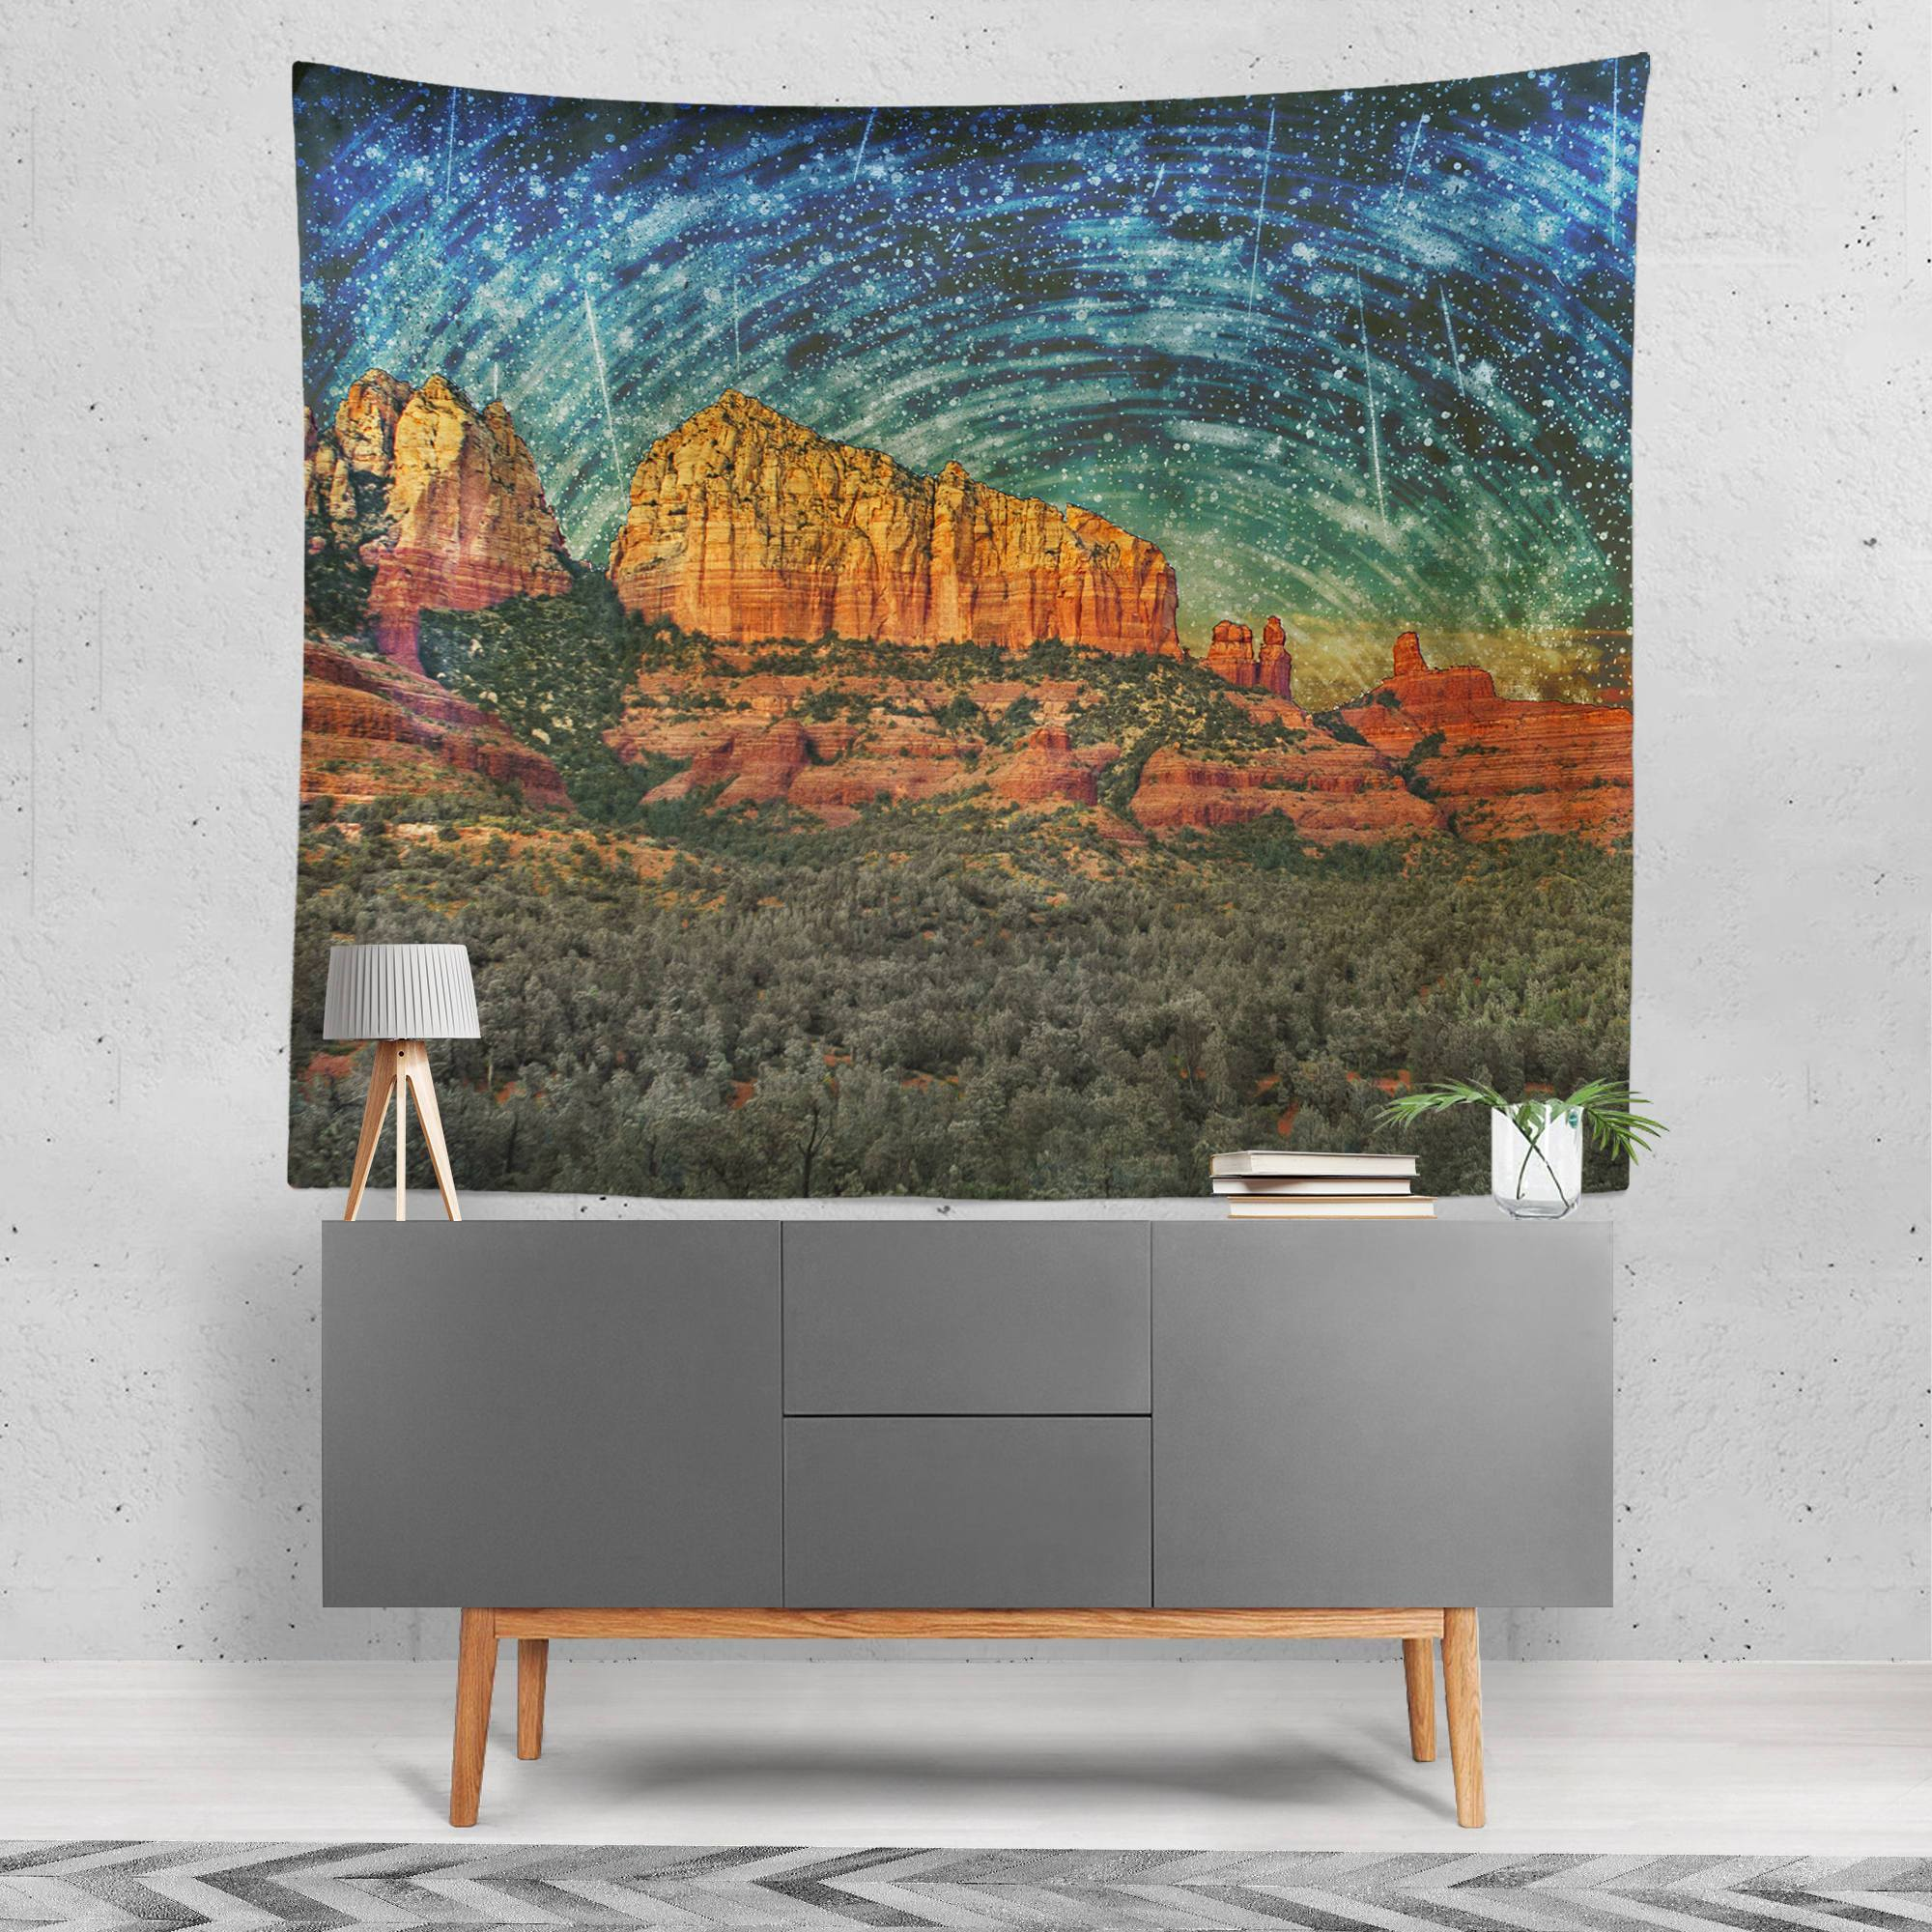 Surreal Sedona in Space Wall Tapestry Lost in Nature